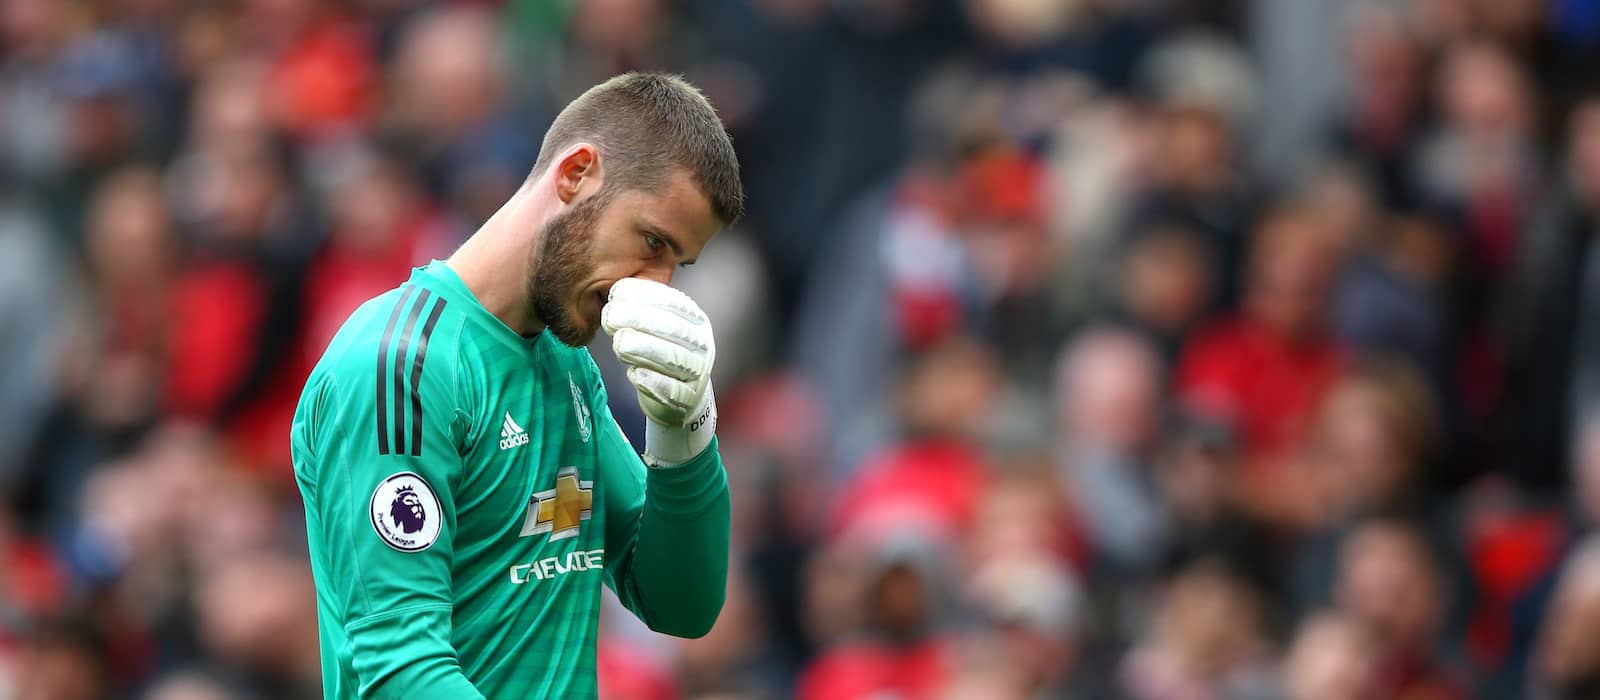 From Spain: David de Gea and Manchester United hit wall in contract talks